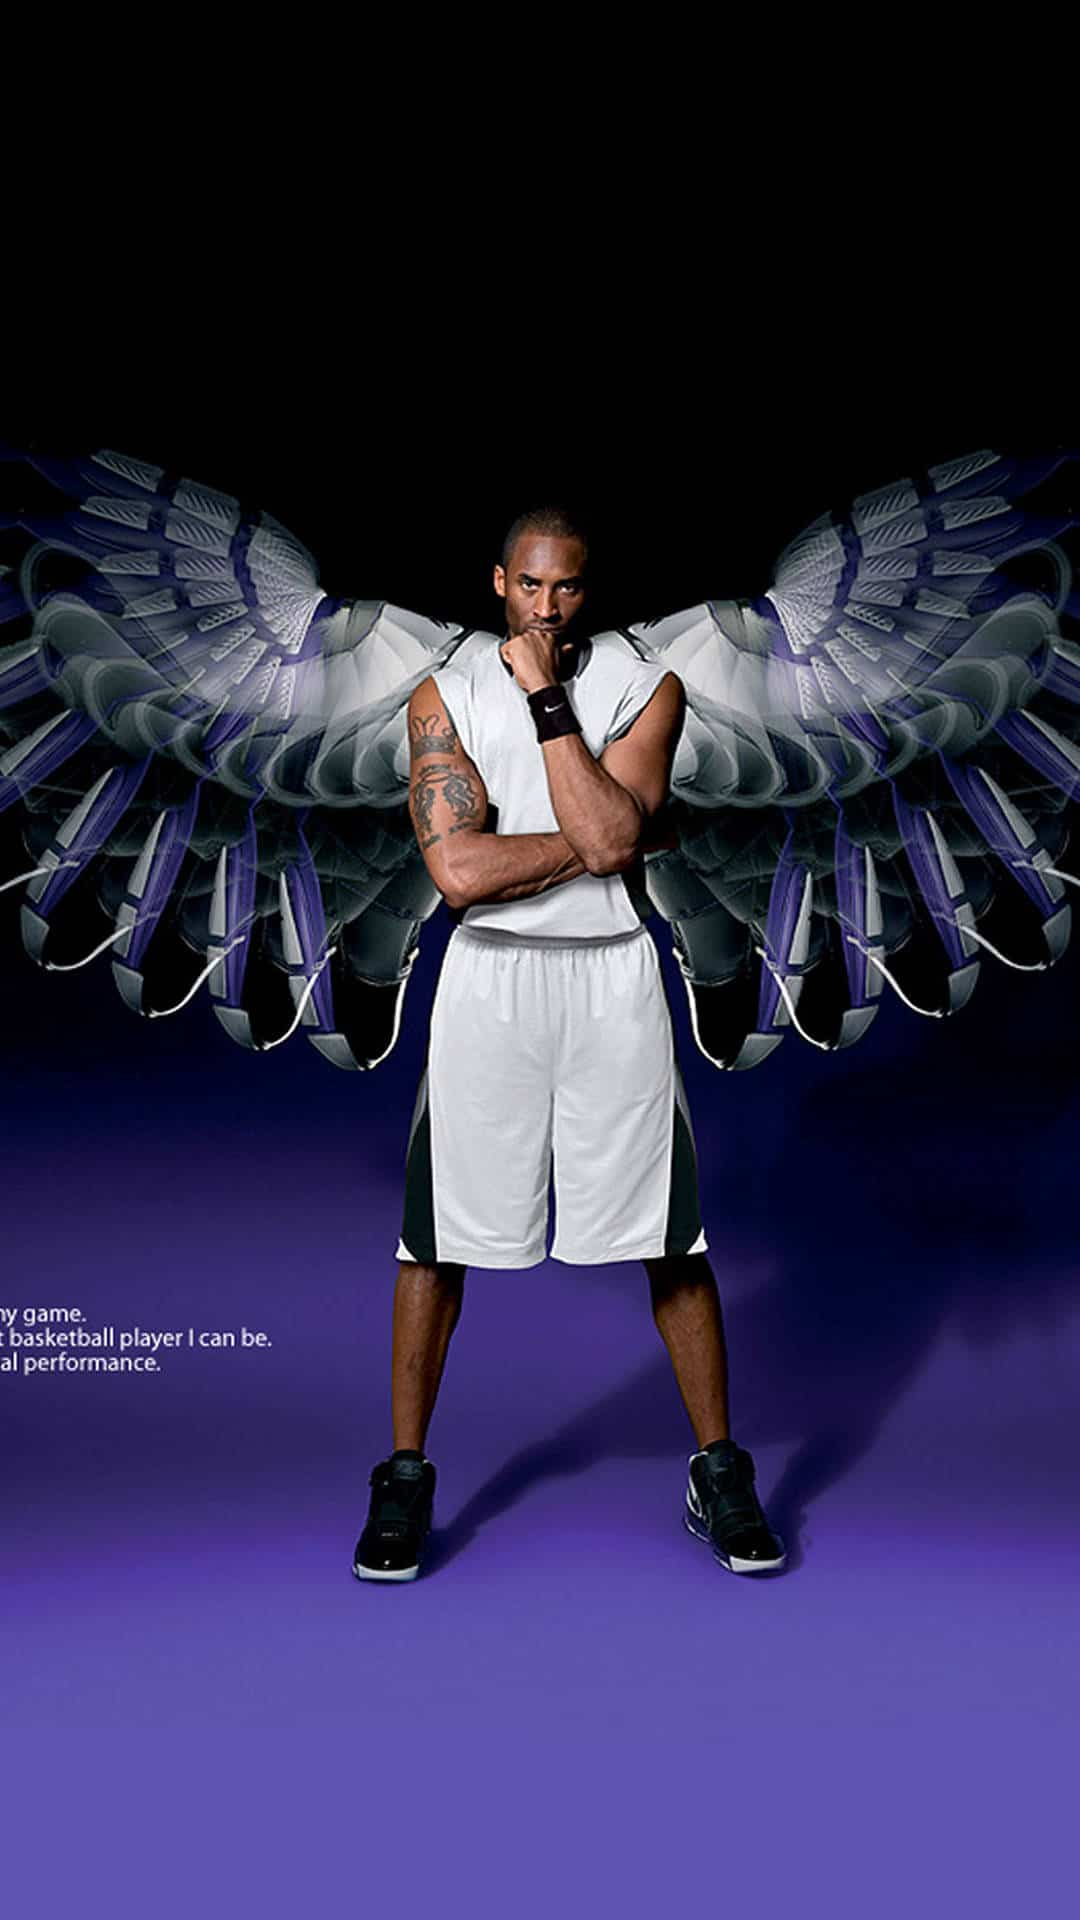 Wallpapers Apple HD 2016 Bryant 30+ - Kobe for iPhone Lives